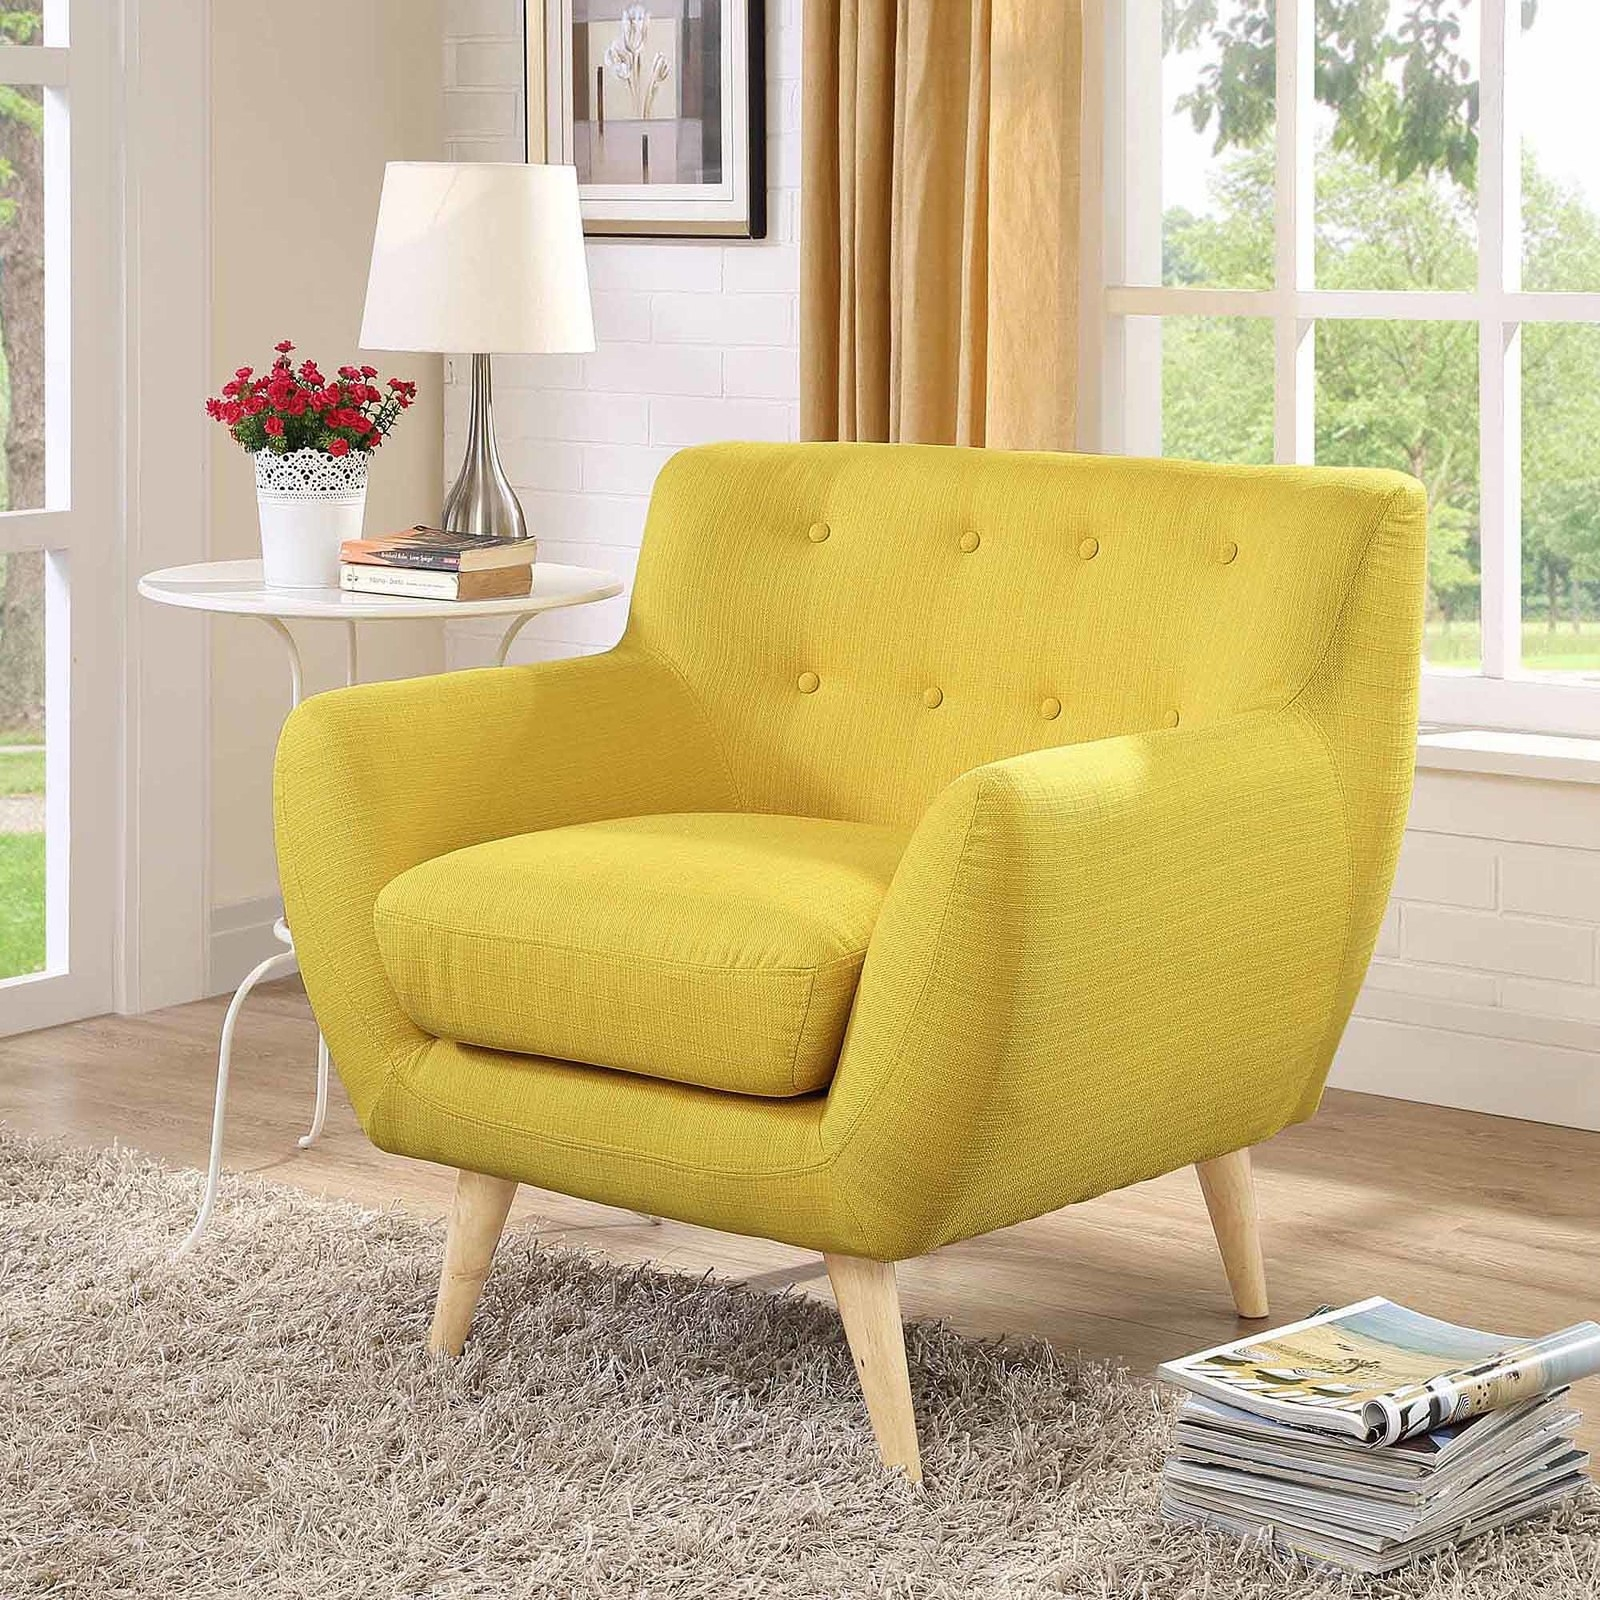 Walmart Furnitures: 24 Colorful (And Surprisingly Stylish!) Pieces Of